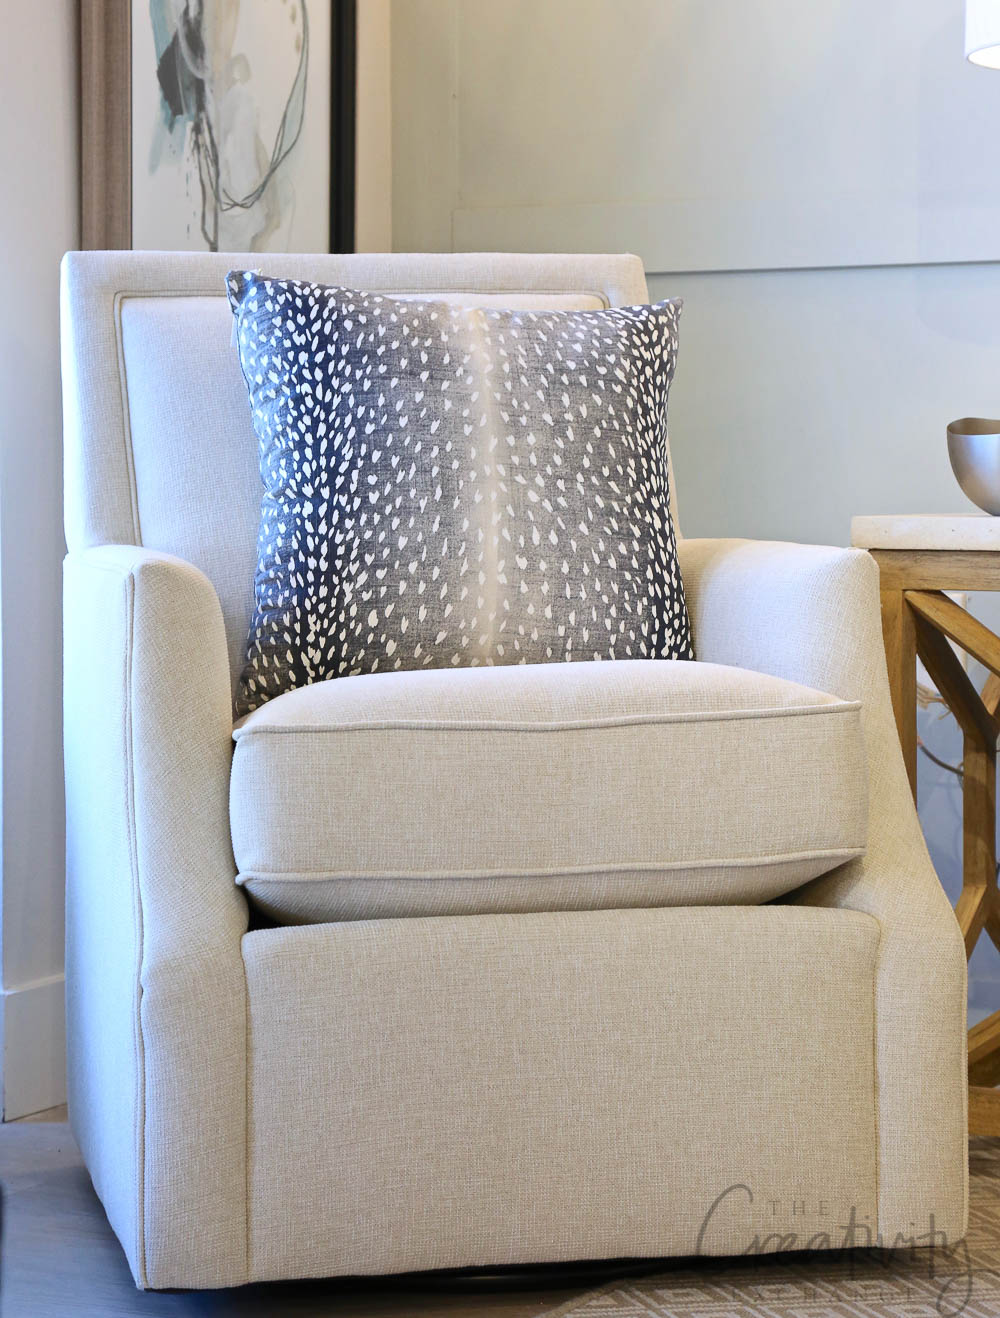 Layered Home Upholstered Swivel Chair